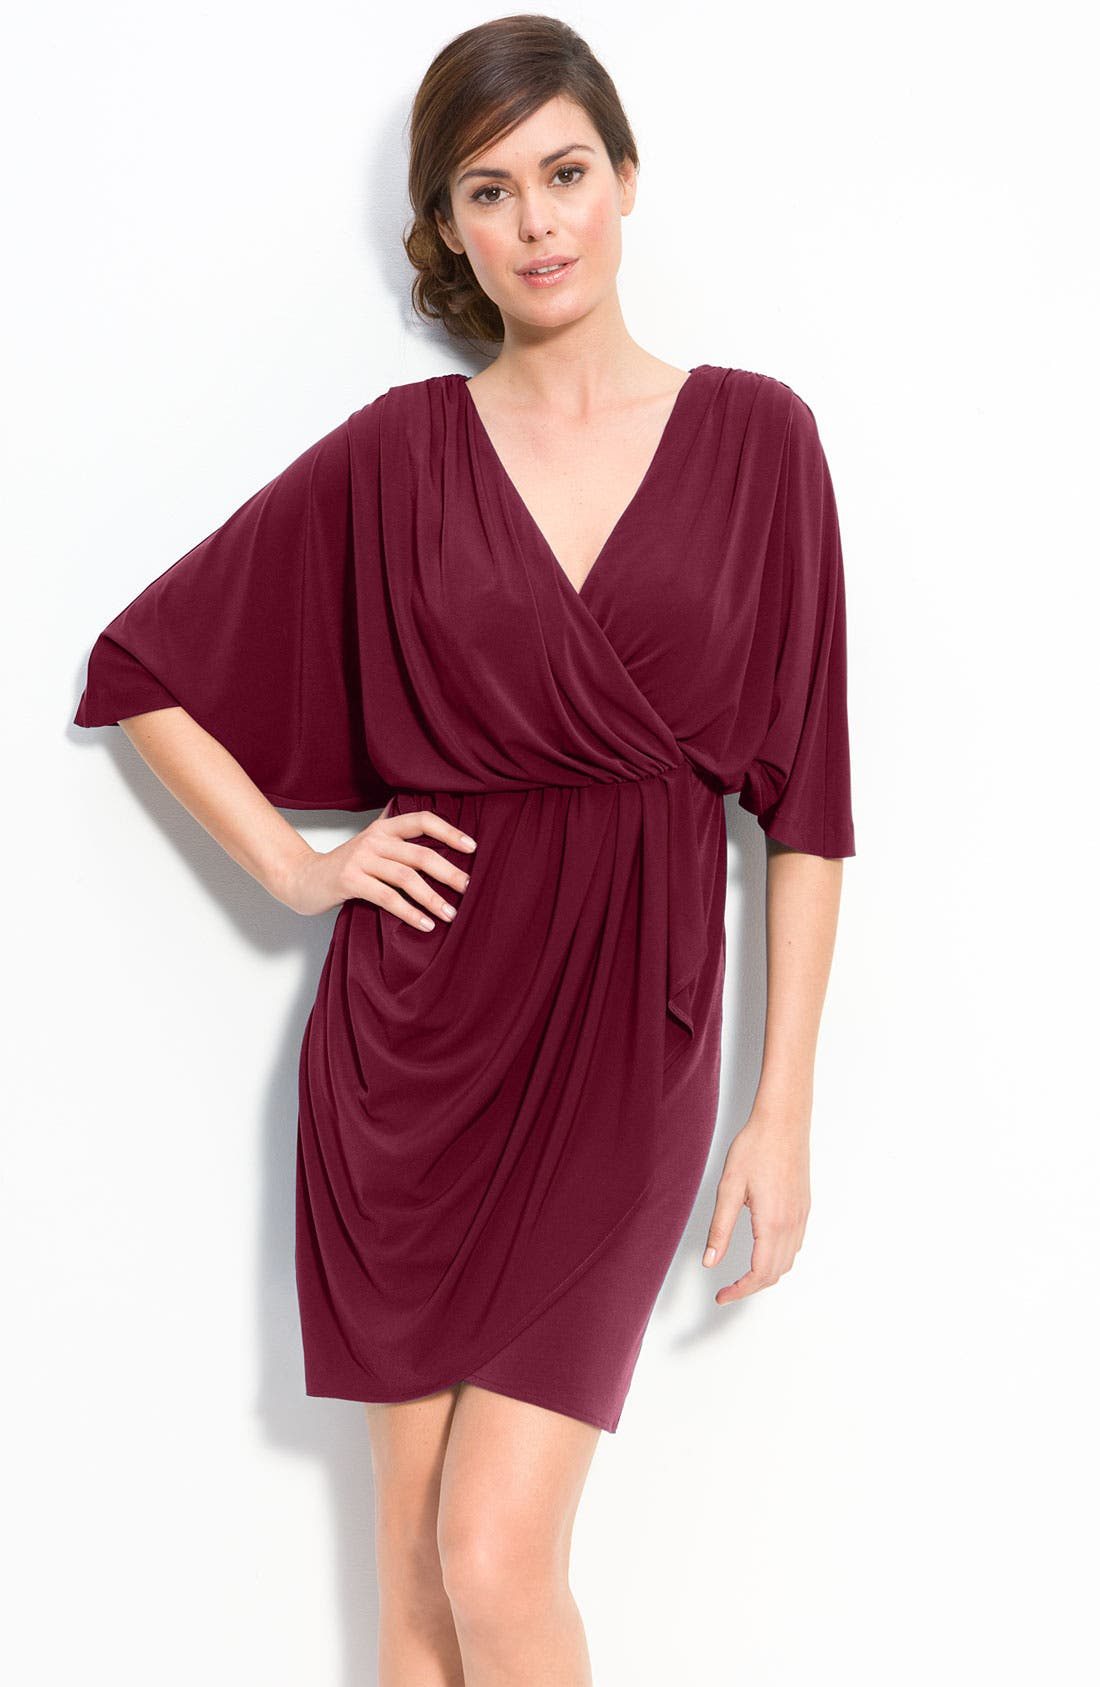 Main Image - Suzi Chin for Maggy Boutique Dolman Jersey Dress